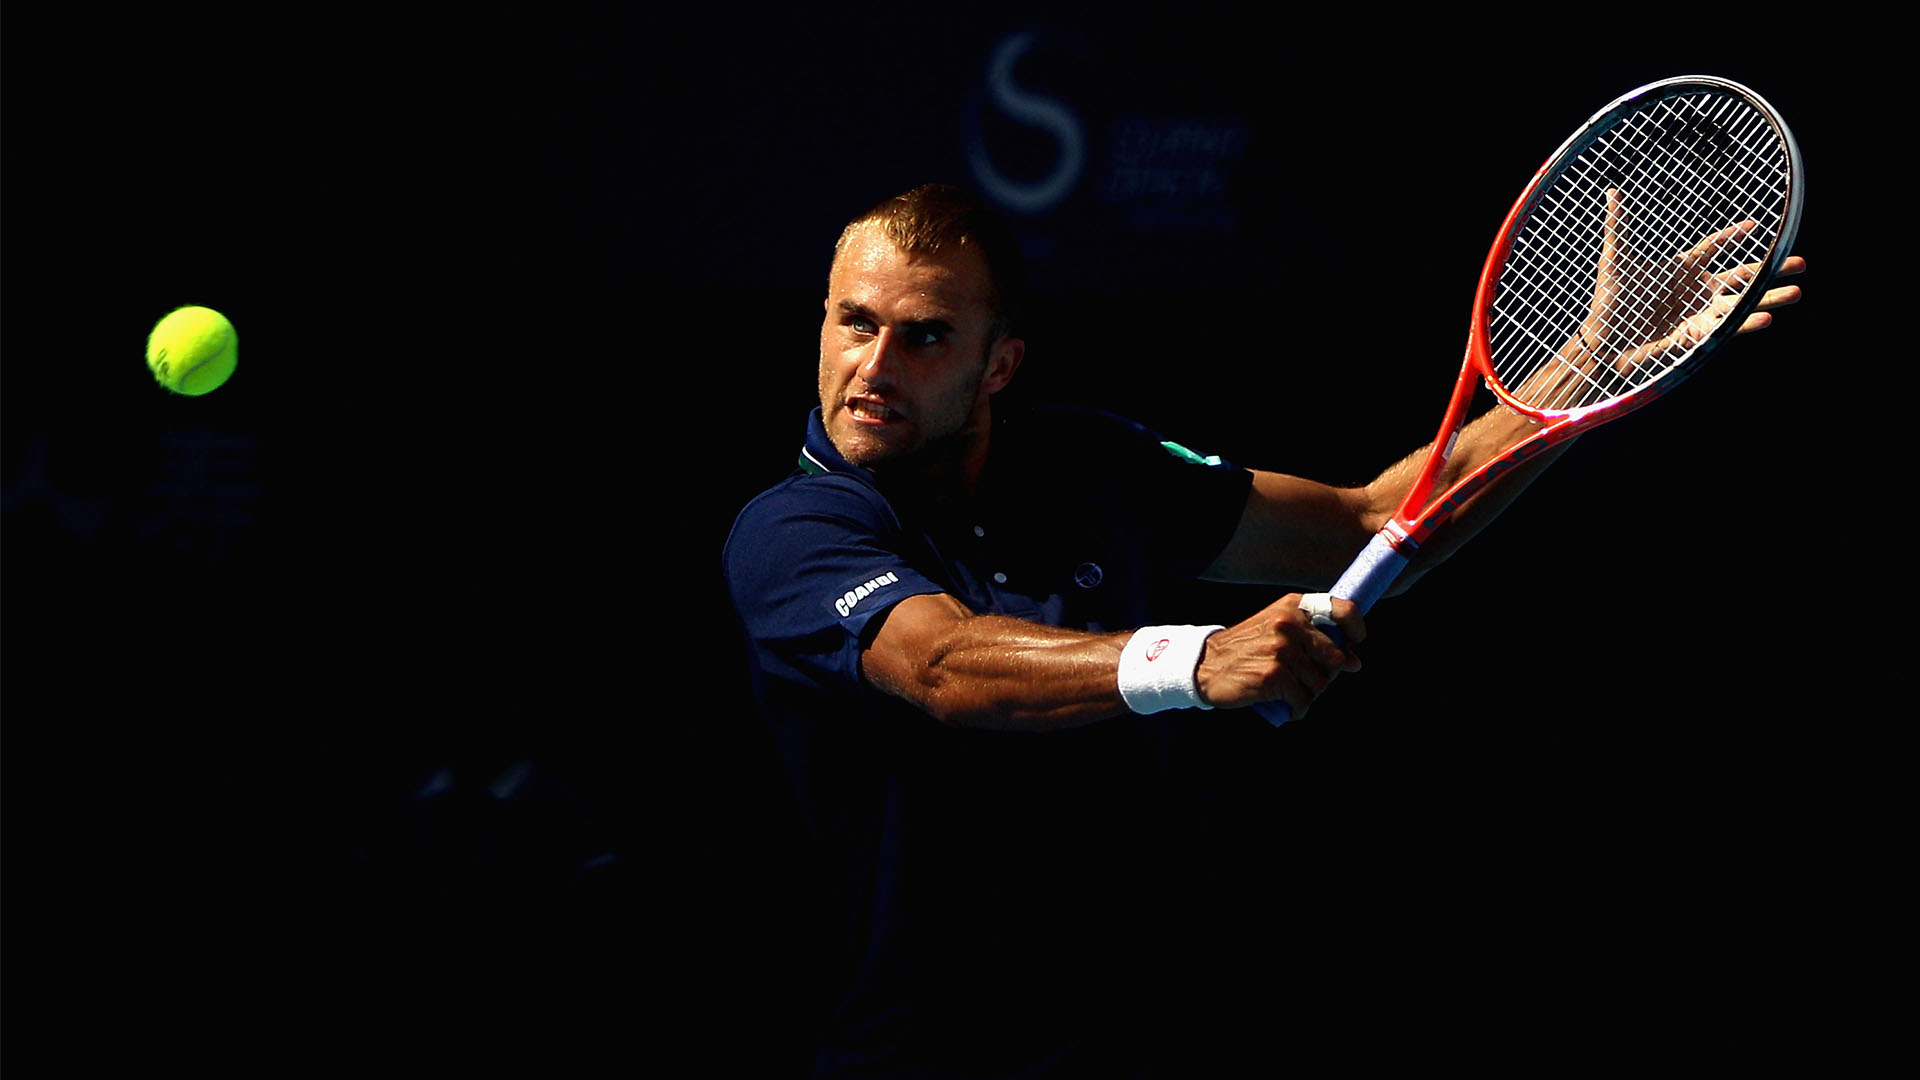 Marius Copil in timpul turneului de tenis din China, Beijing